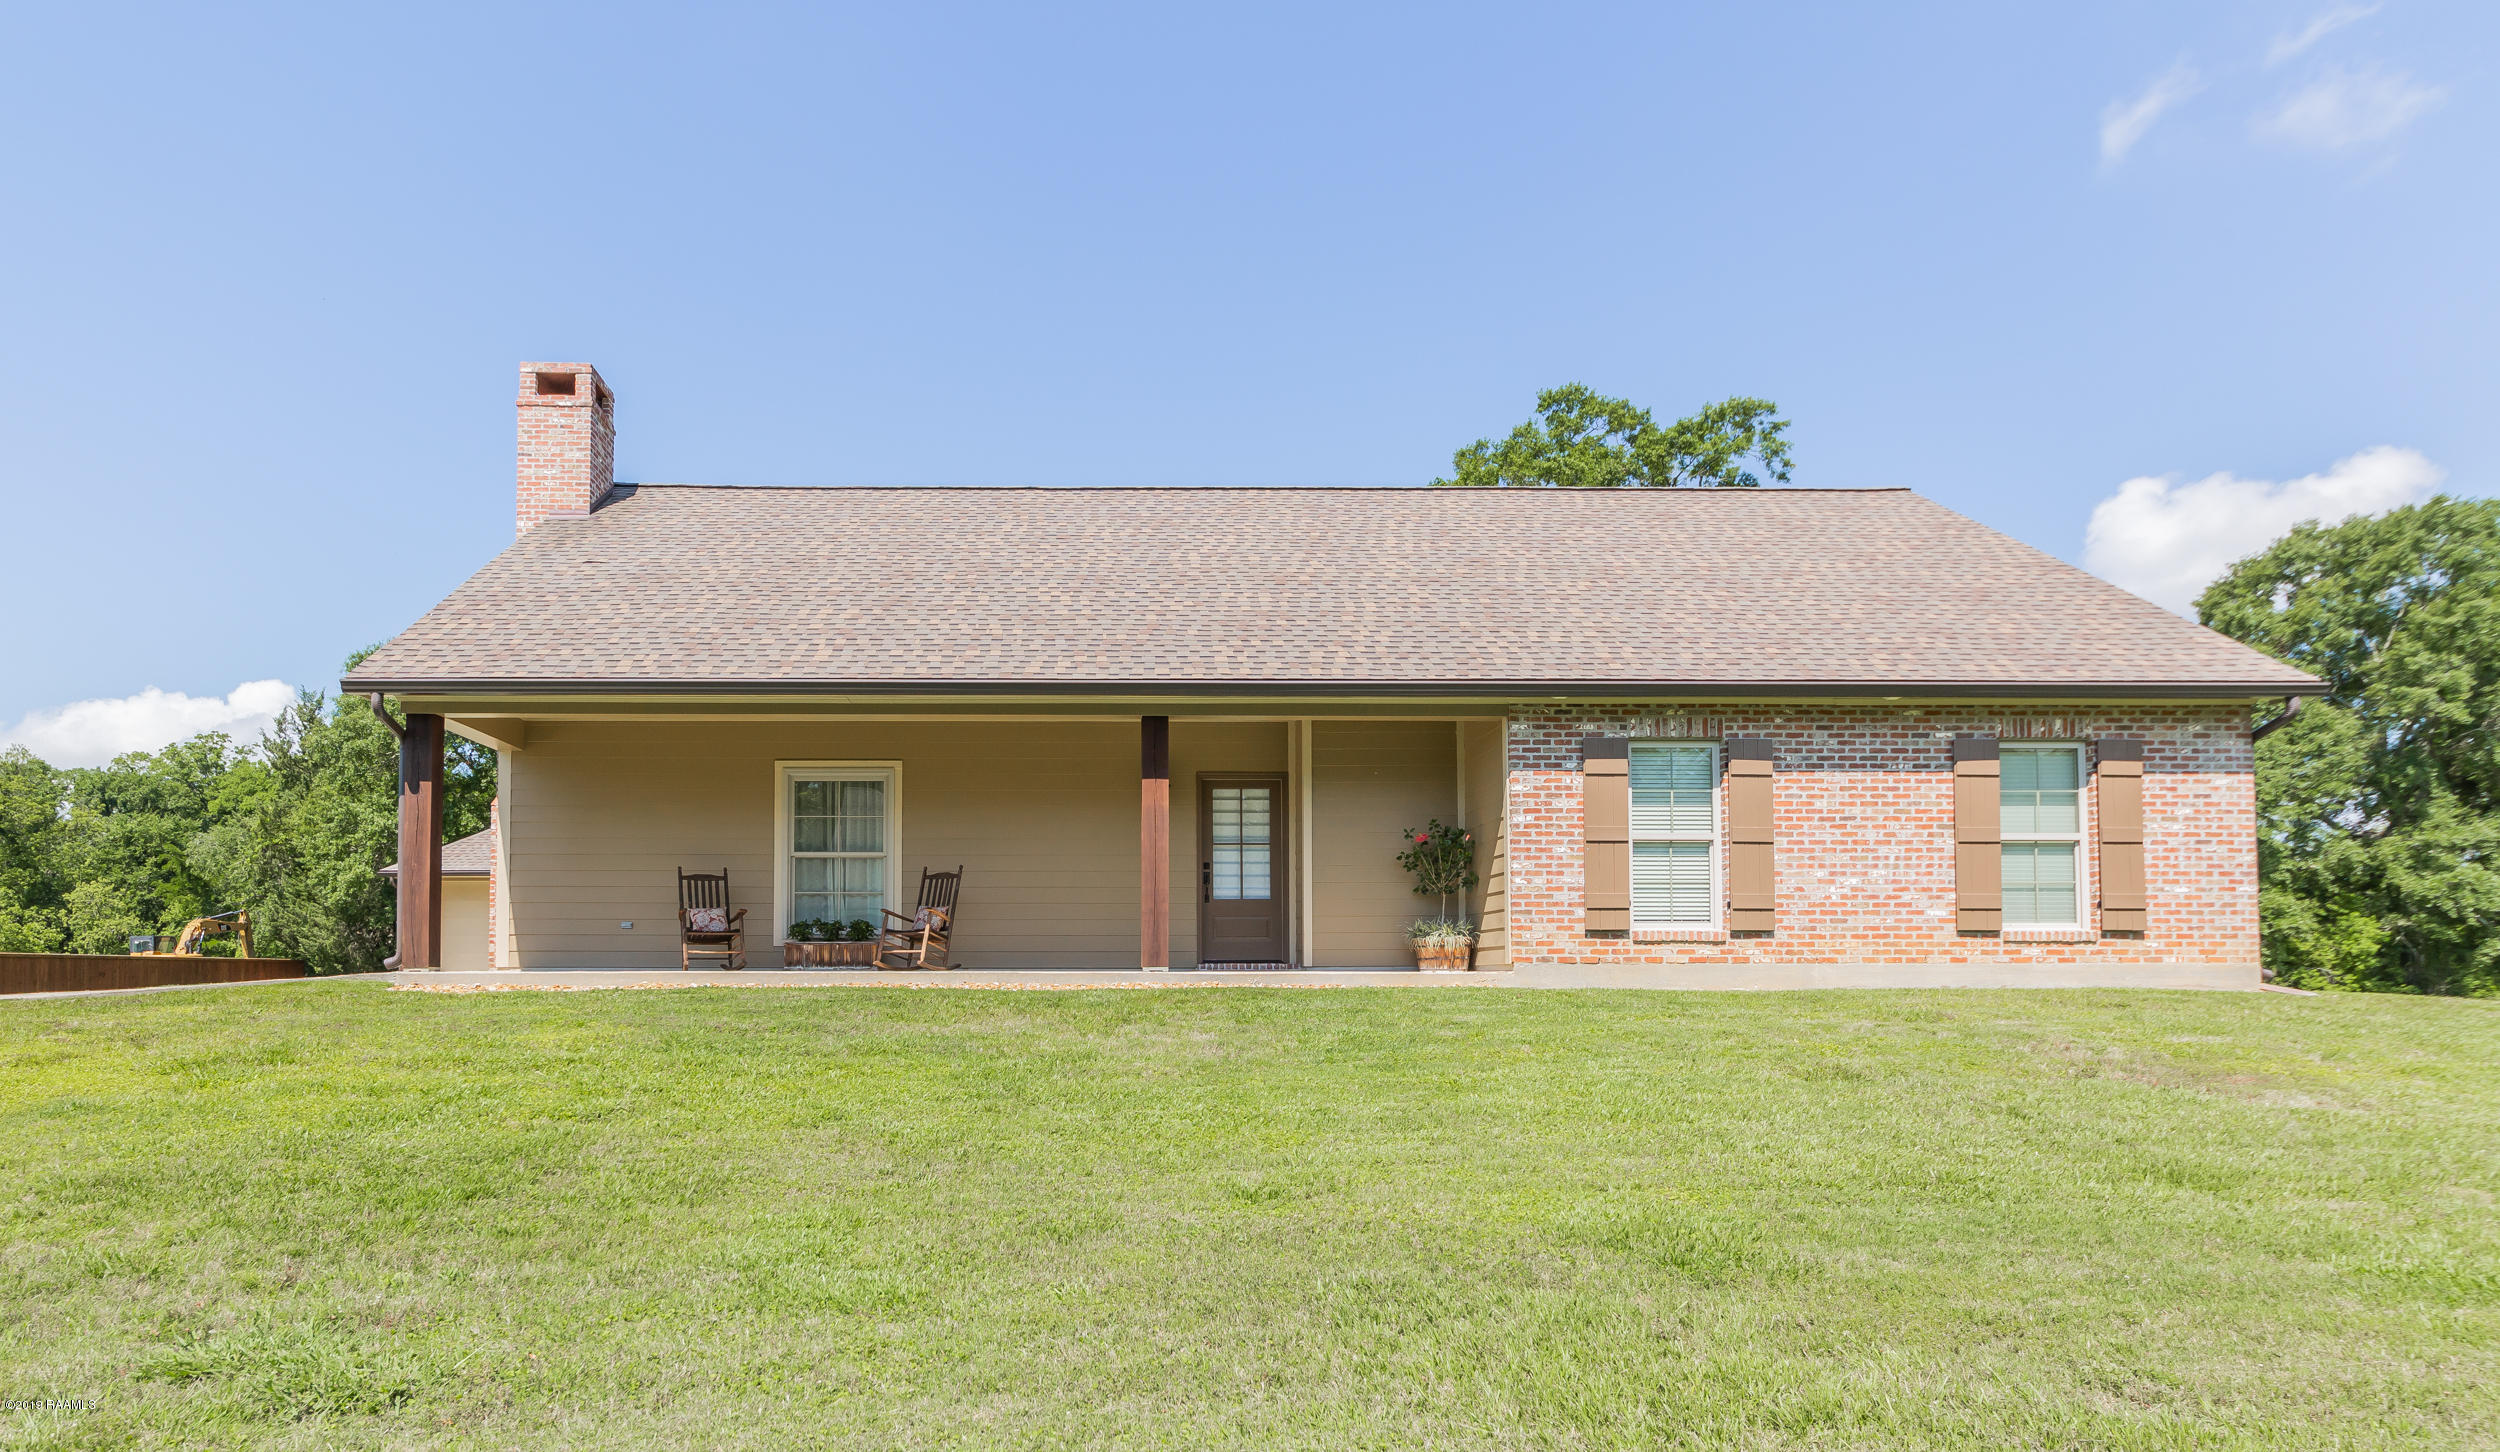 187 Gentry Drive, Washington, LA 70589 Photo #14